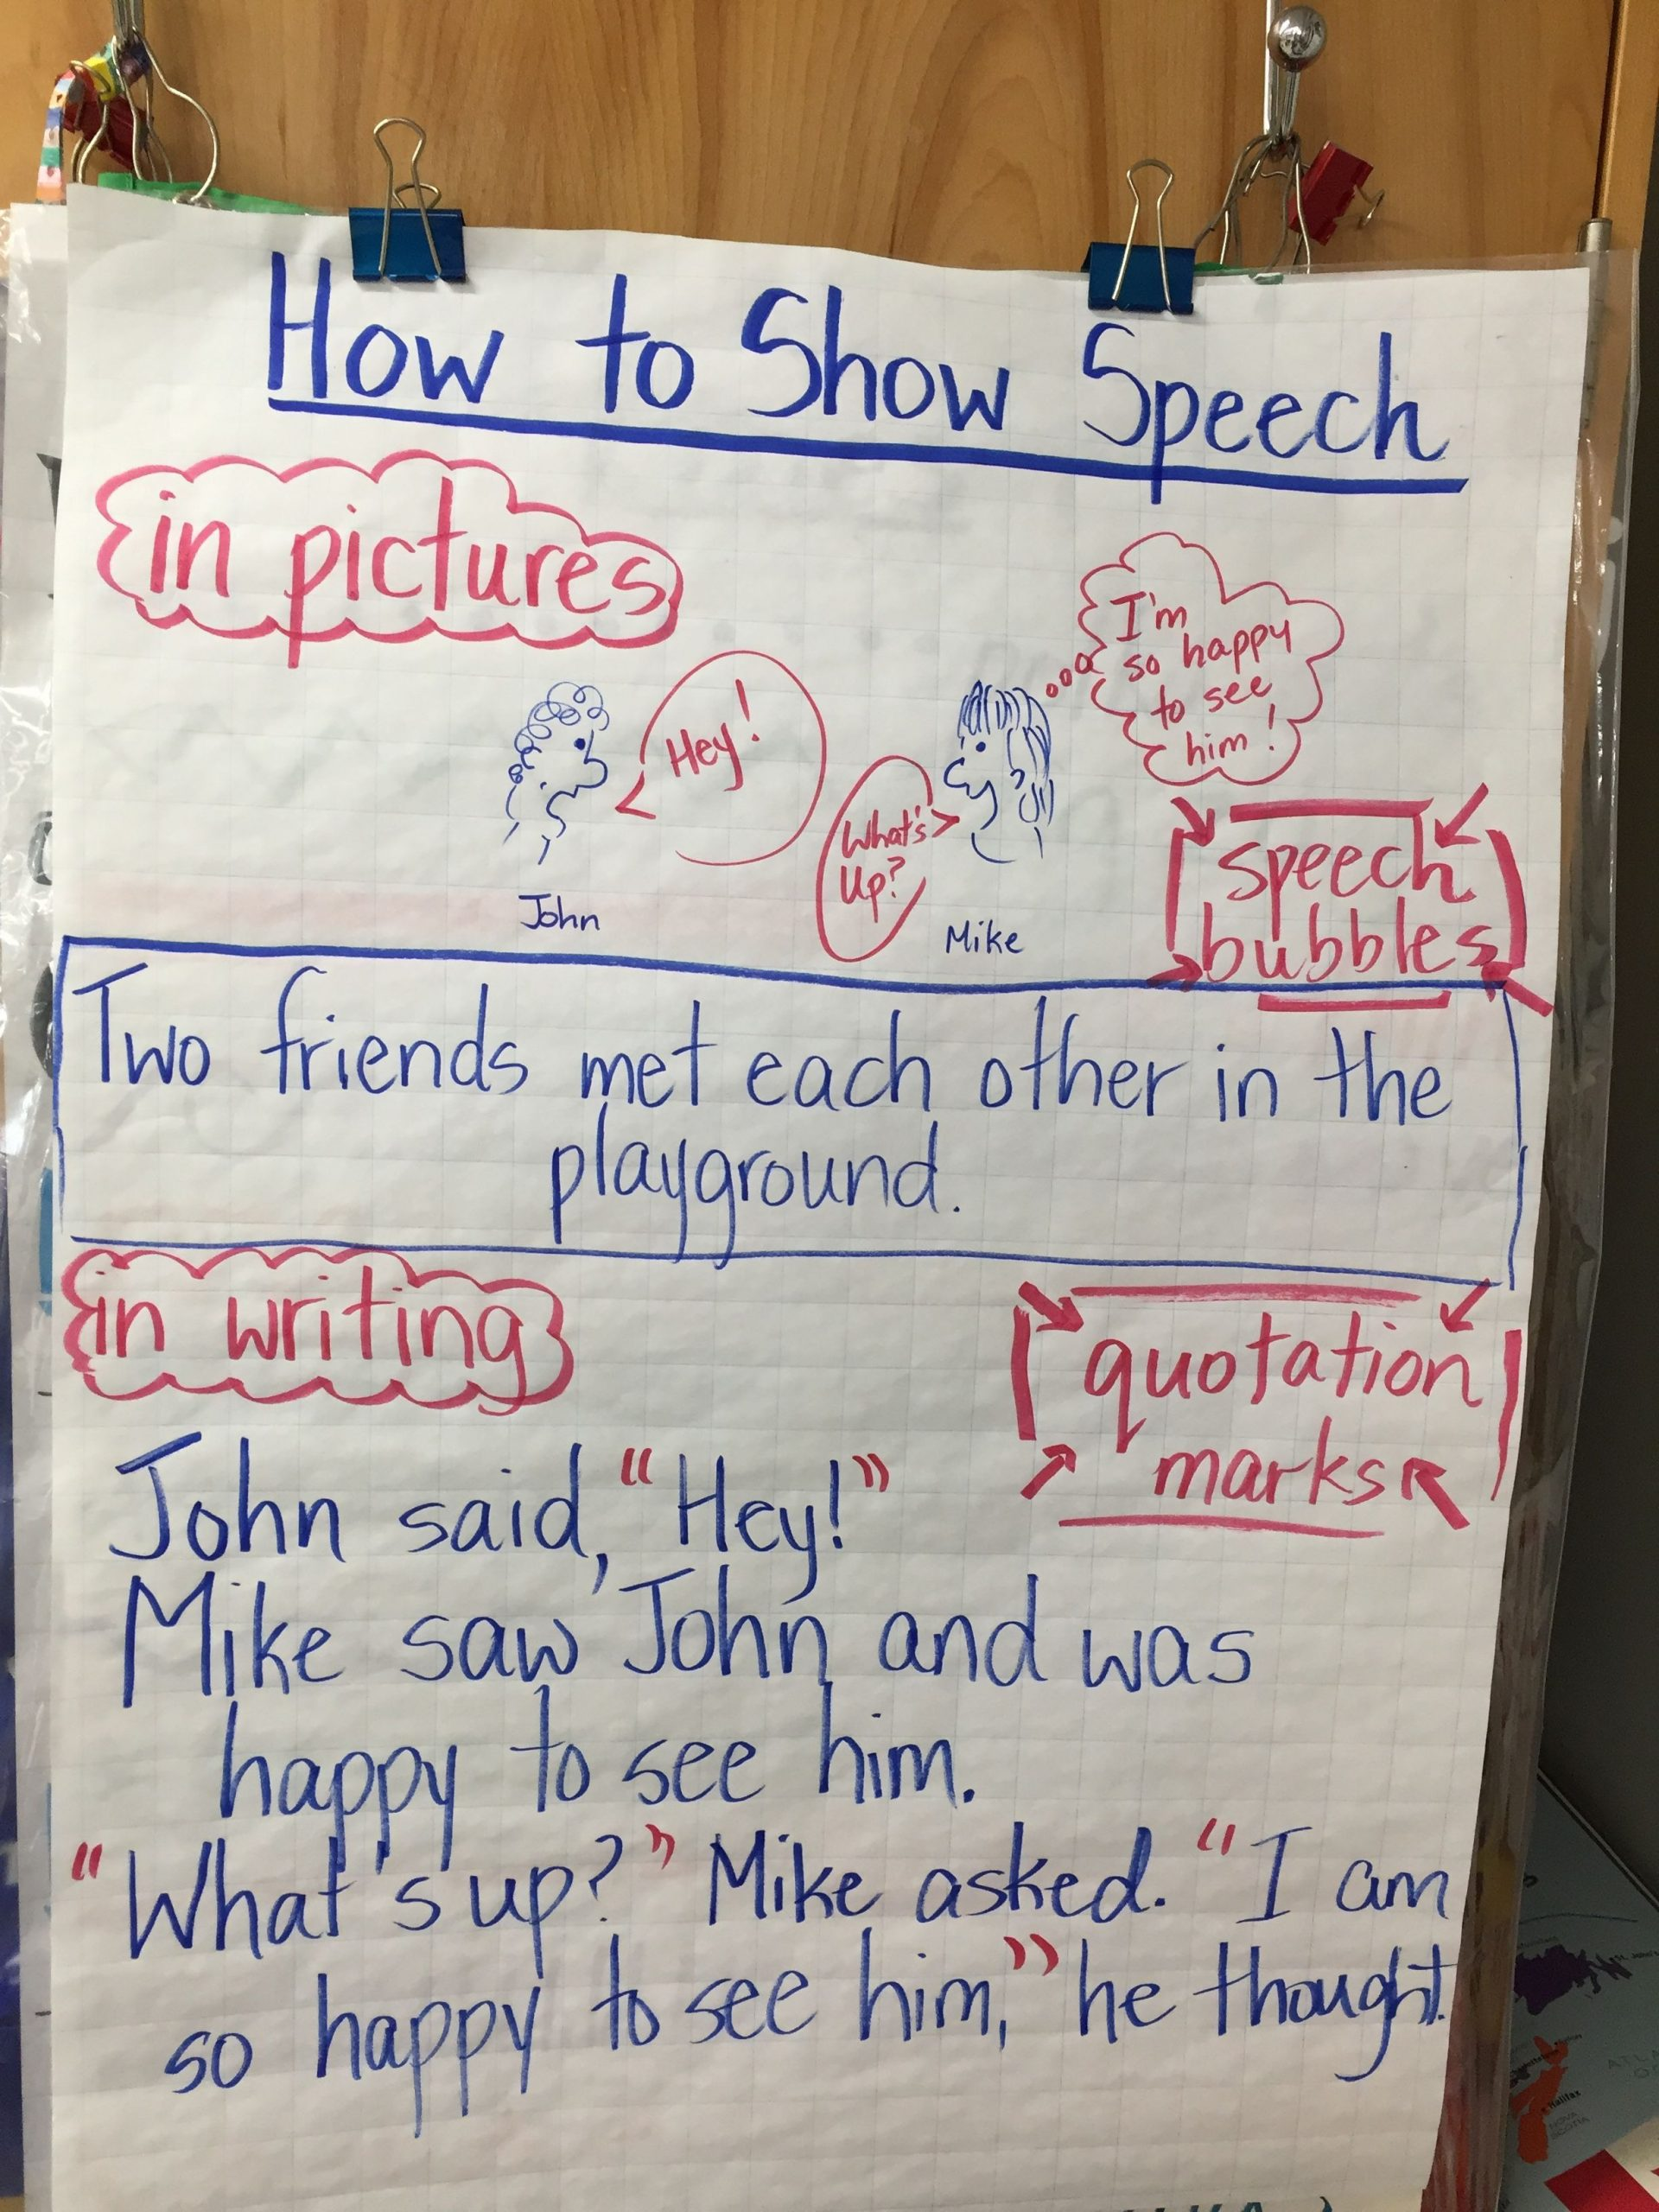 Quotation Worksheets 4th Grade Quotation Marks Vs Speech Bubbles How to Show Speech In